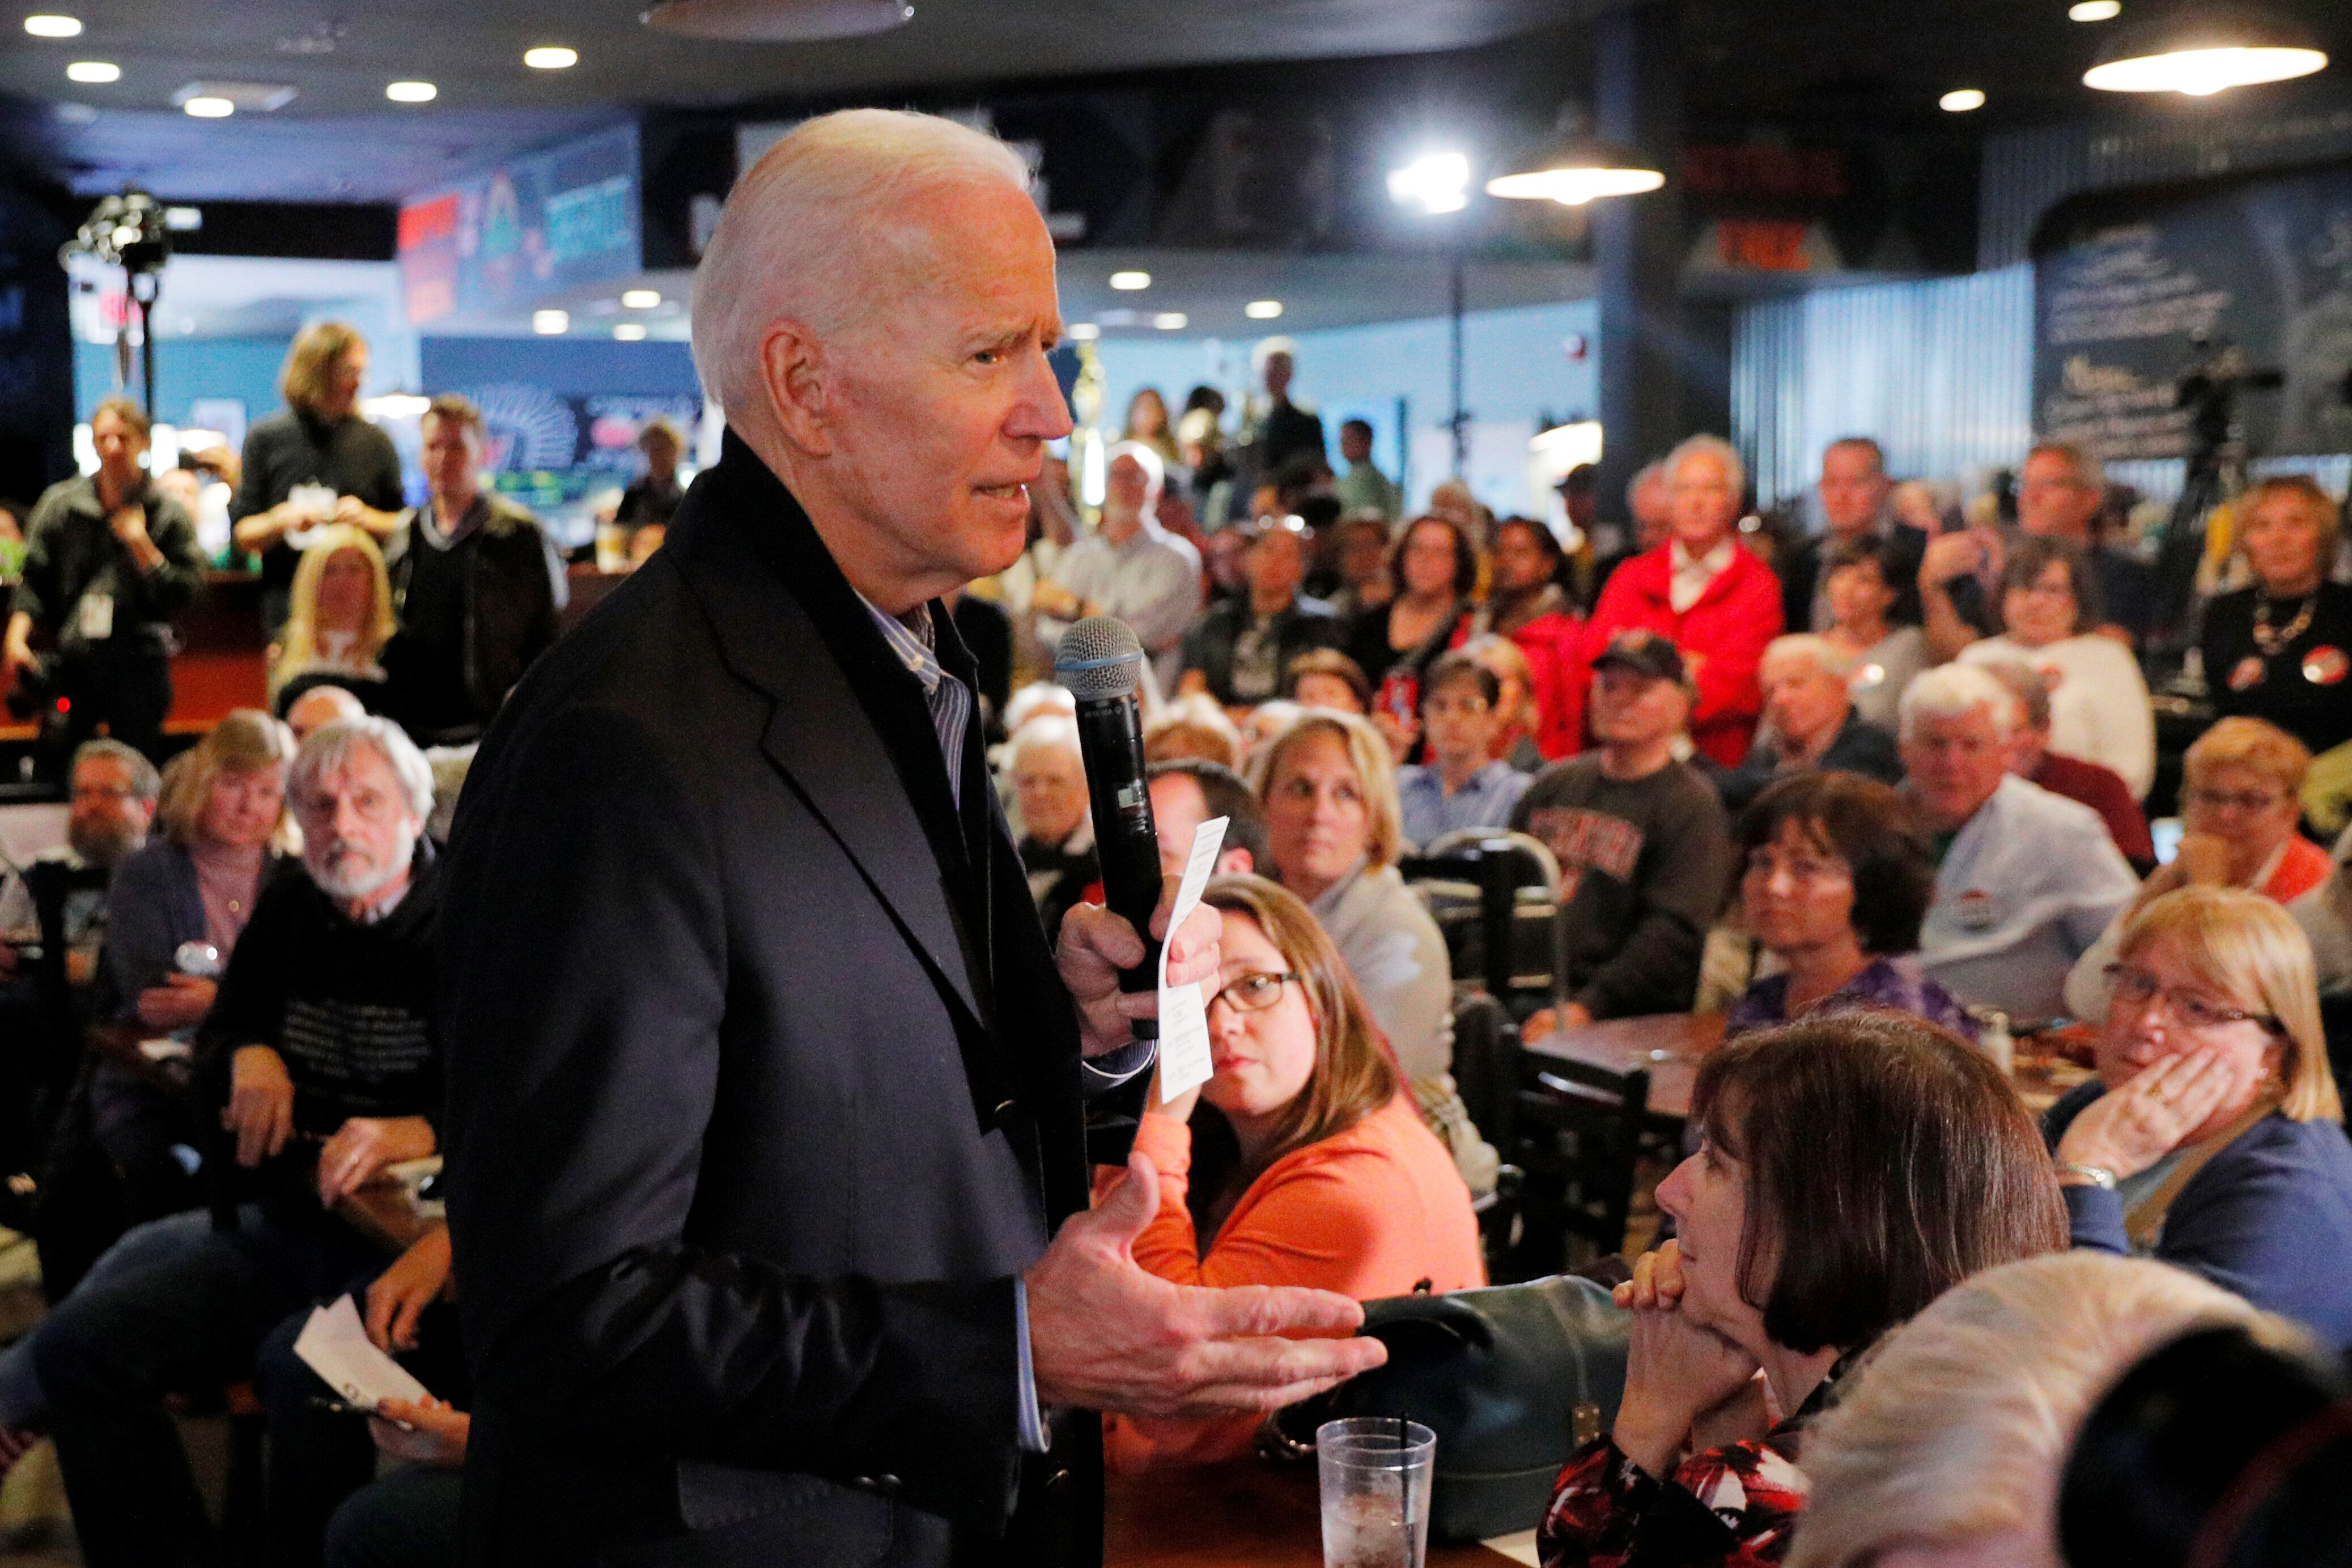 Democratic 2020 U.S. presidential candidate and former Vice President Joe Biden speaks during a campaign stop in Hampton, New Hampshire, U.S., May 13, 2019.   REUTERS/Brian Snyder